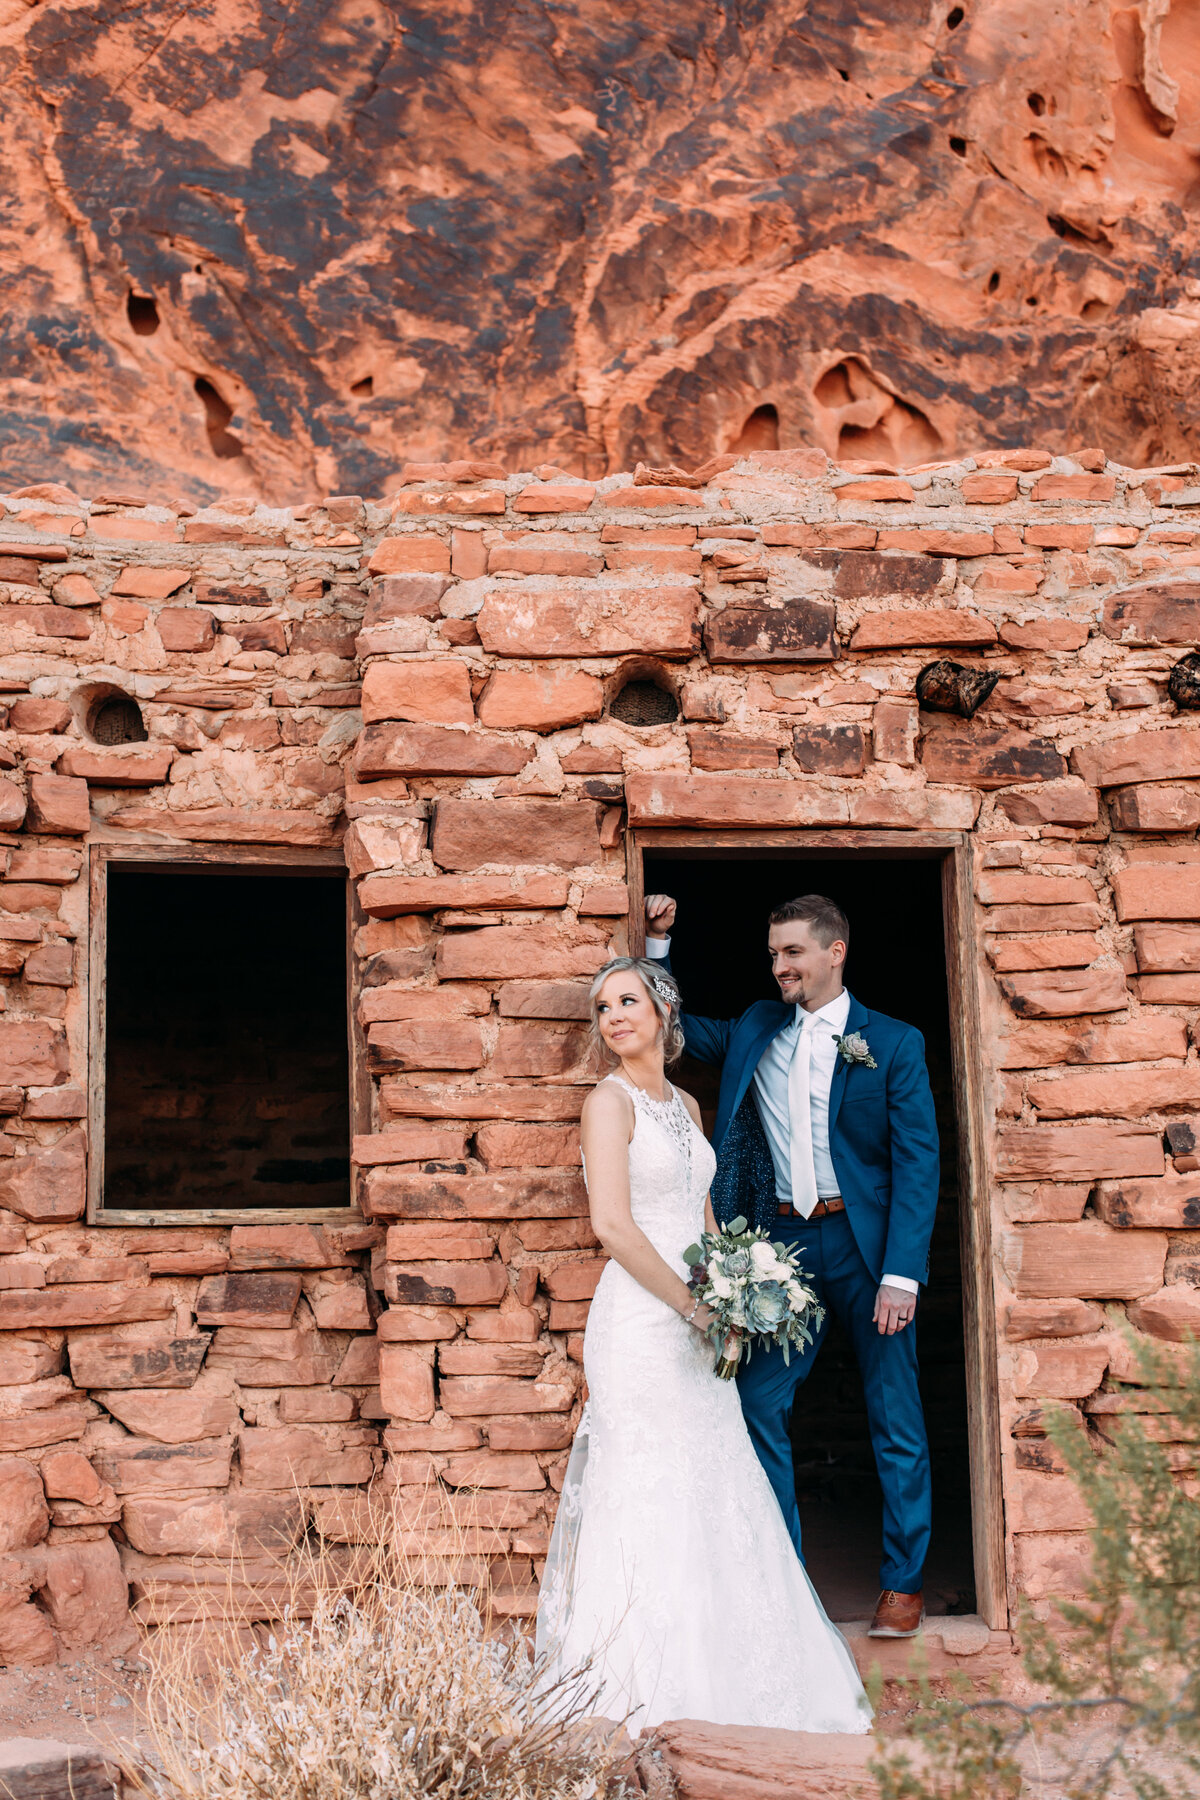 Heather+Ivan|AshlynSavannahPhoto|ValleyofFireElopement-52